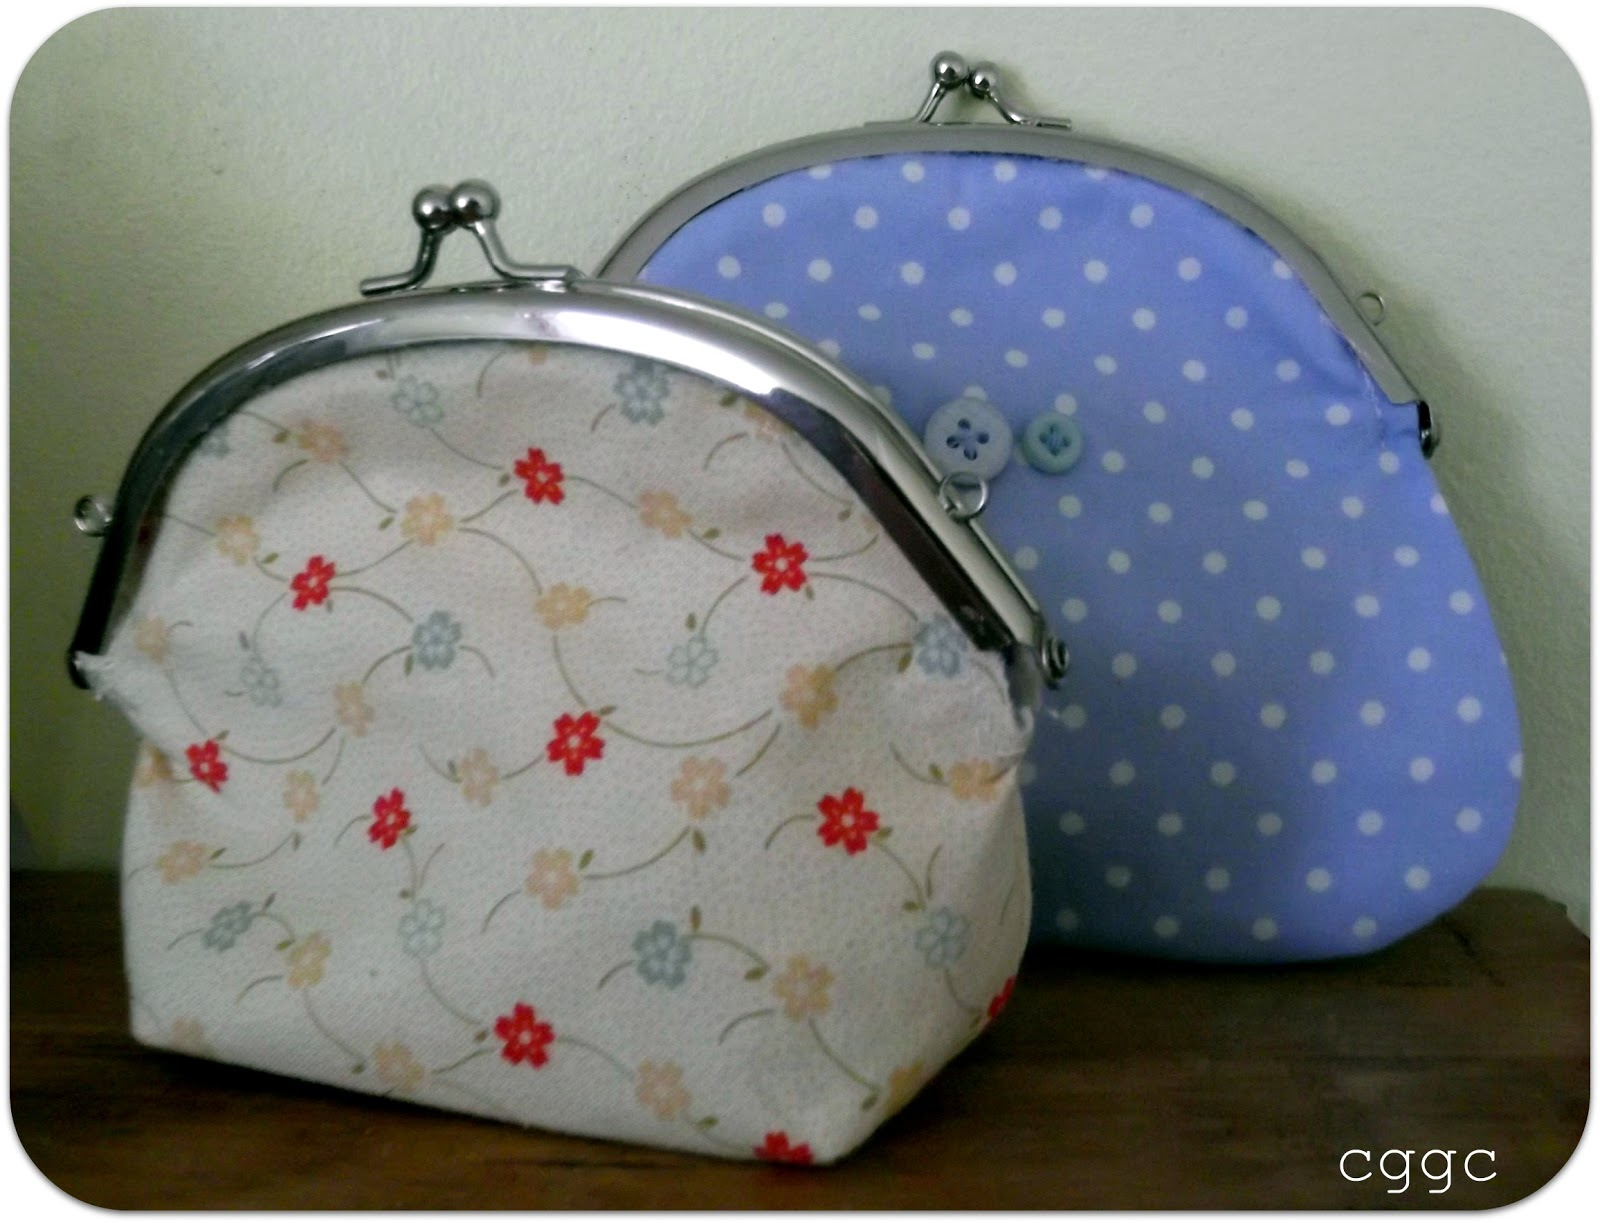 coin purse frames fgz3  And if you have a pesky purse frame you want to turn into an actual purse  here is what you need